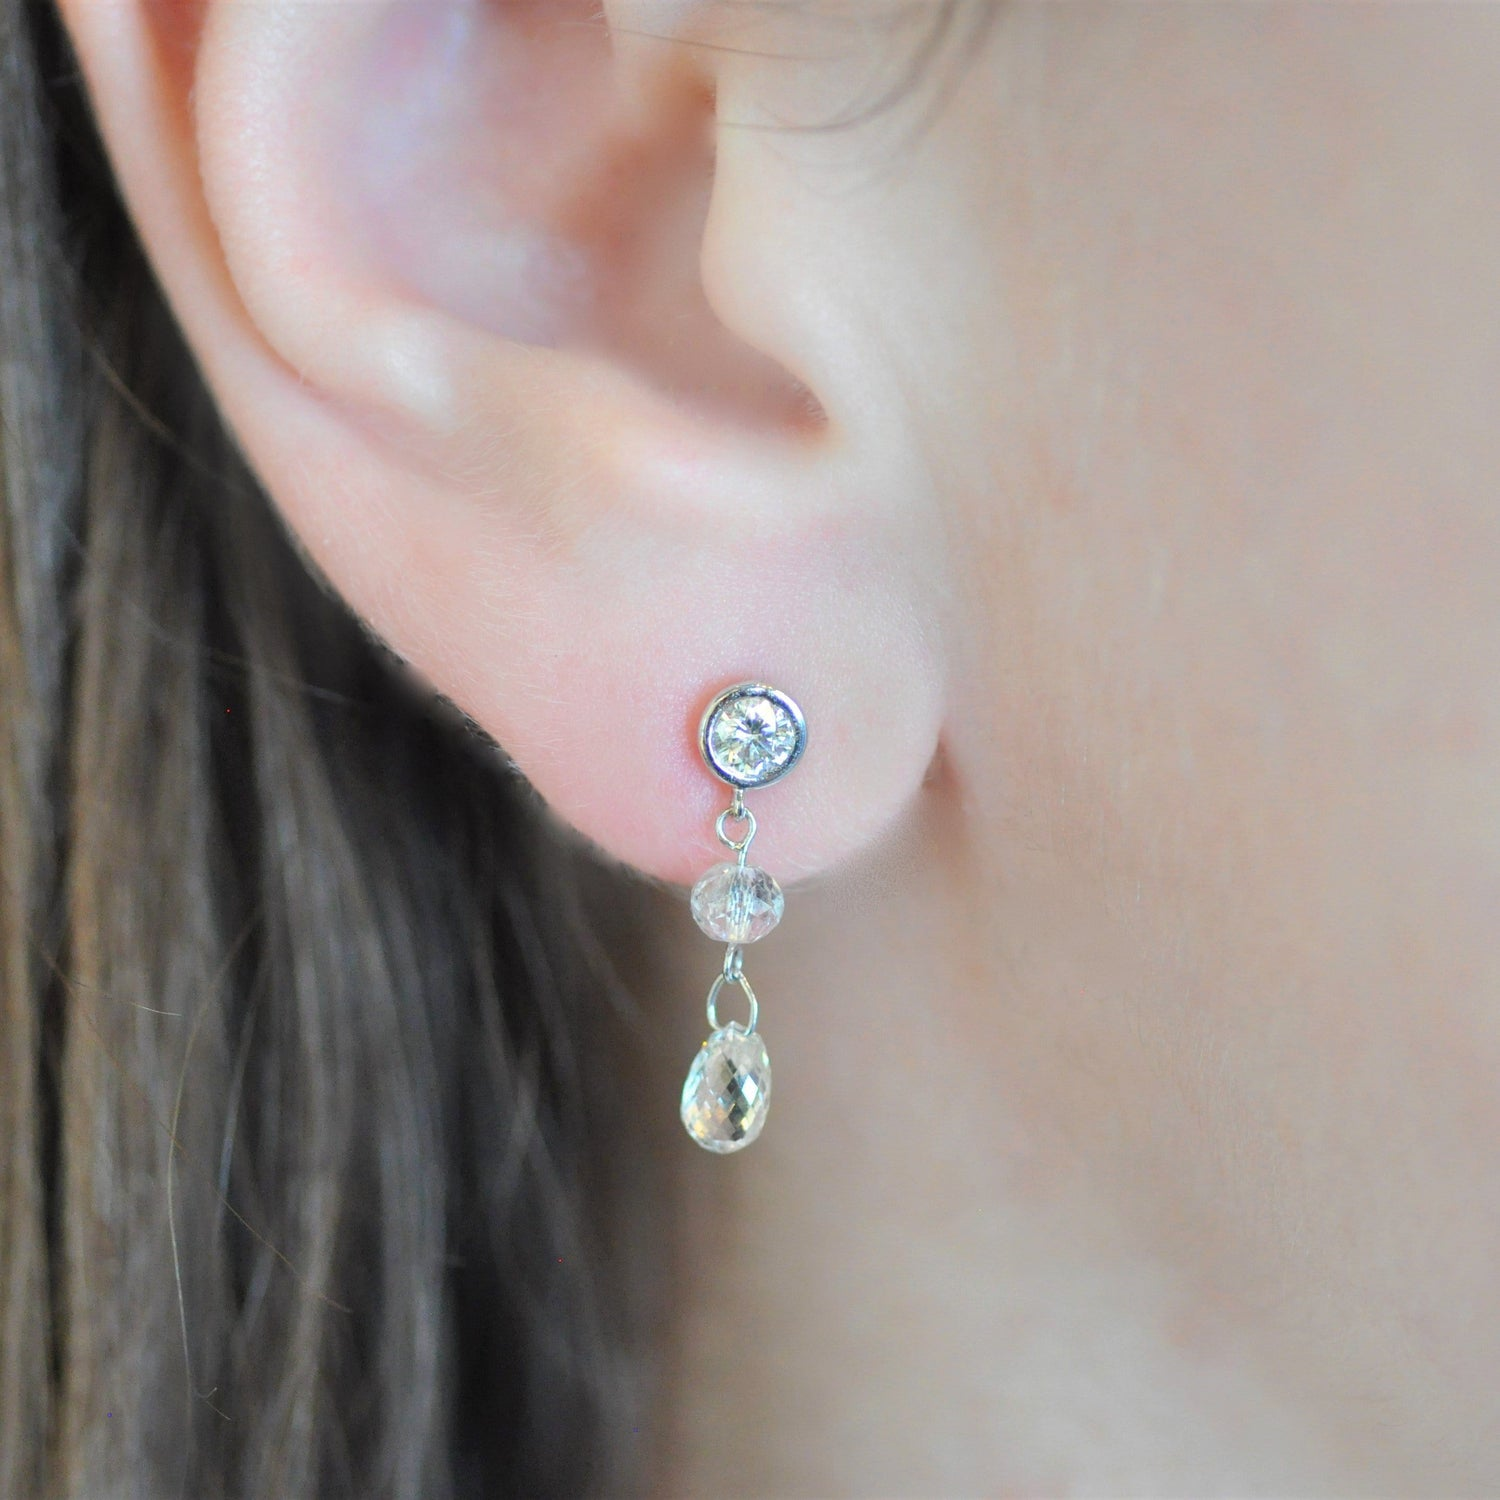 Brilliant Diamond Briolette Cut White Gold Diamond Earrings Elizabeth Jane Atelier One of a kind